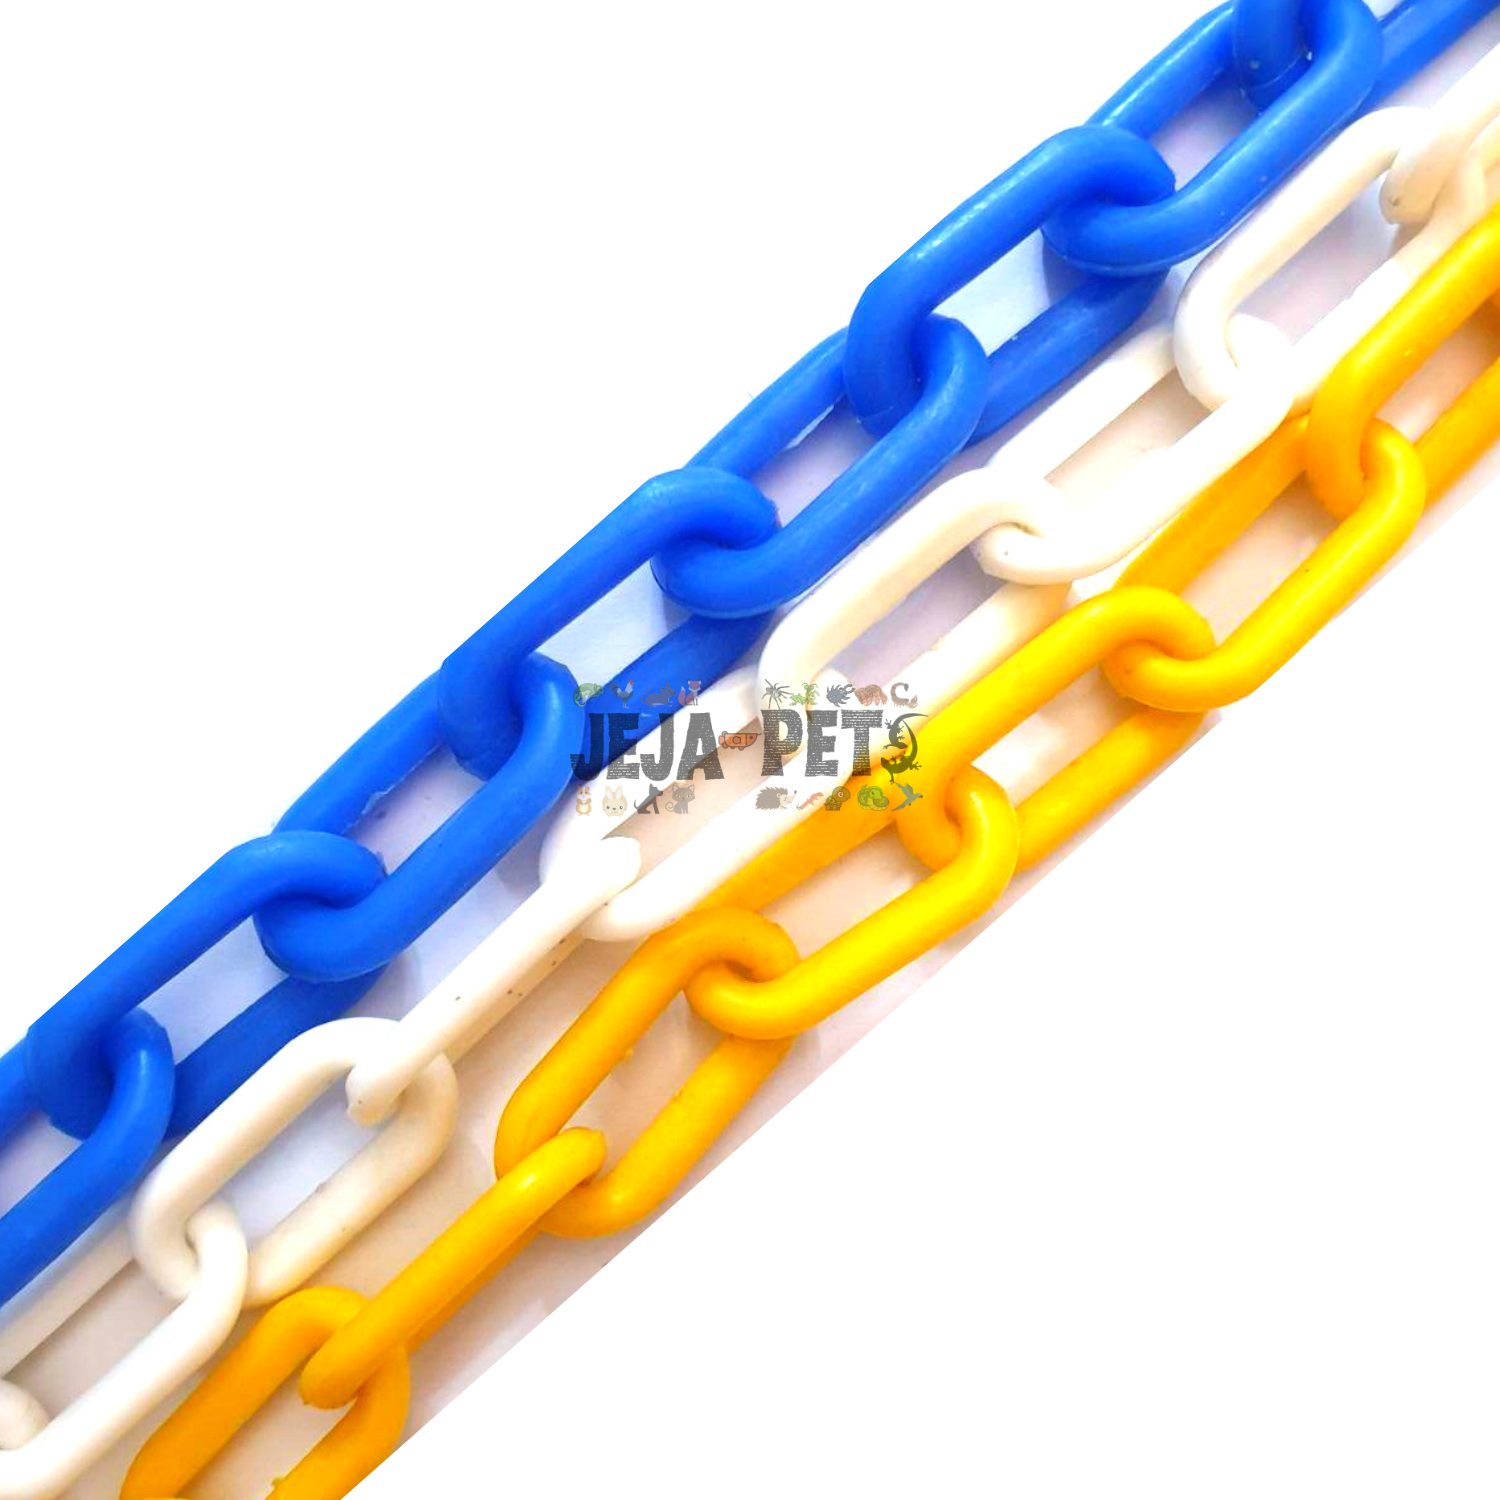 Heavy Duty C Link Plastic Chains - Large